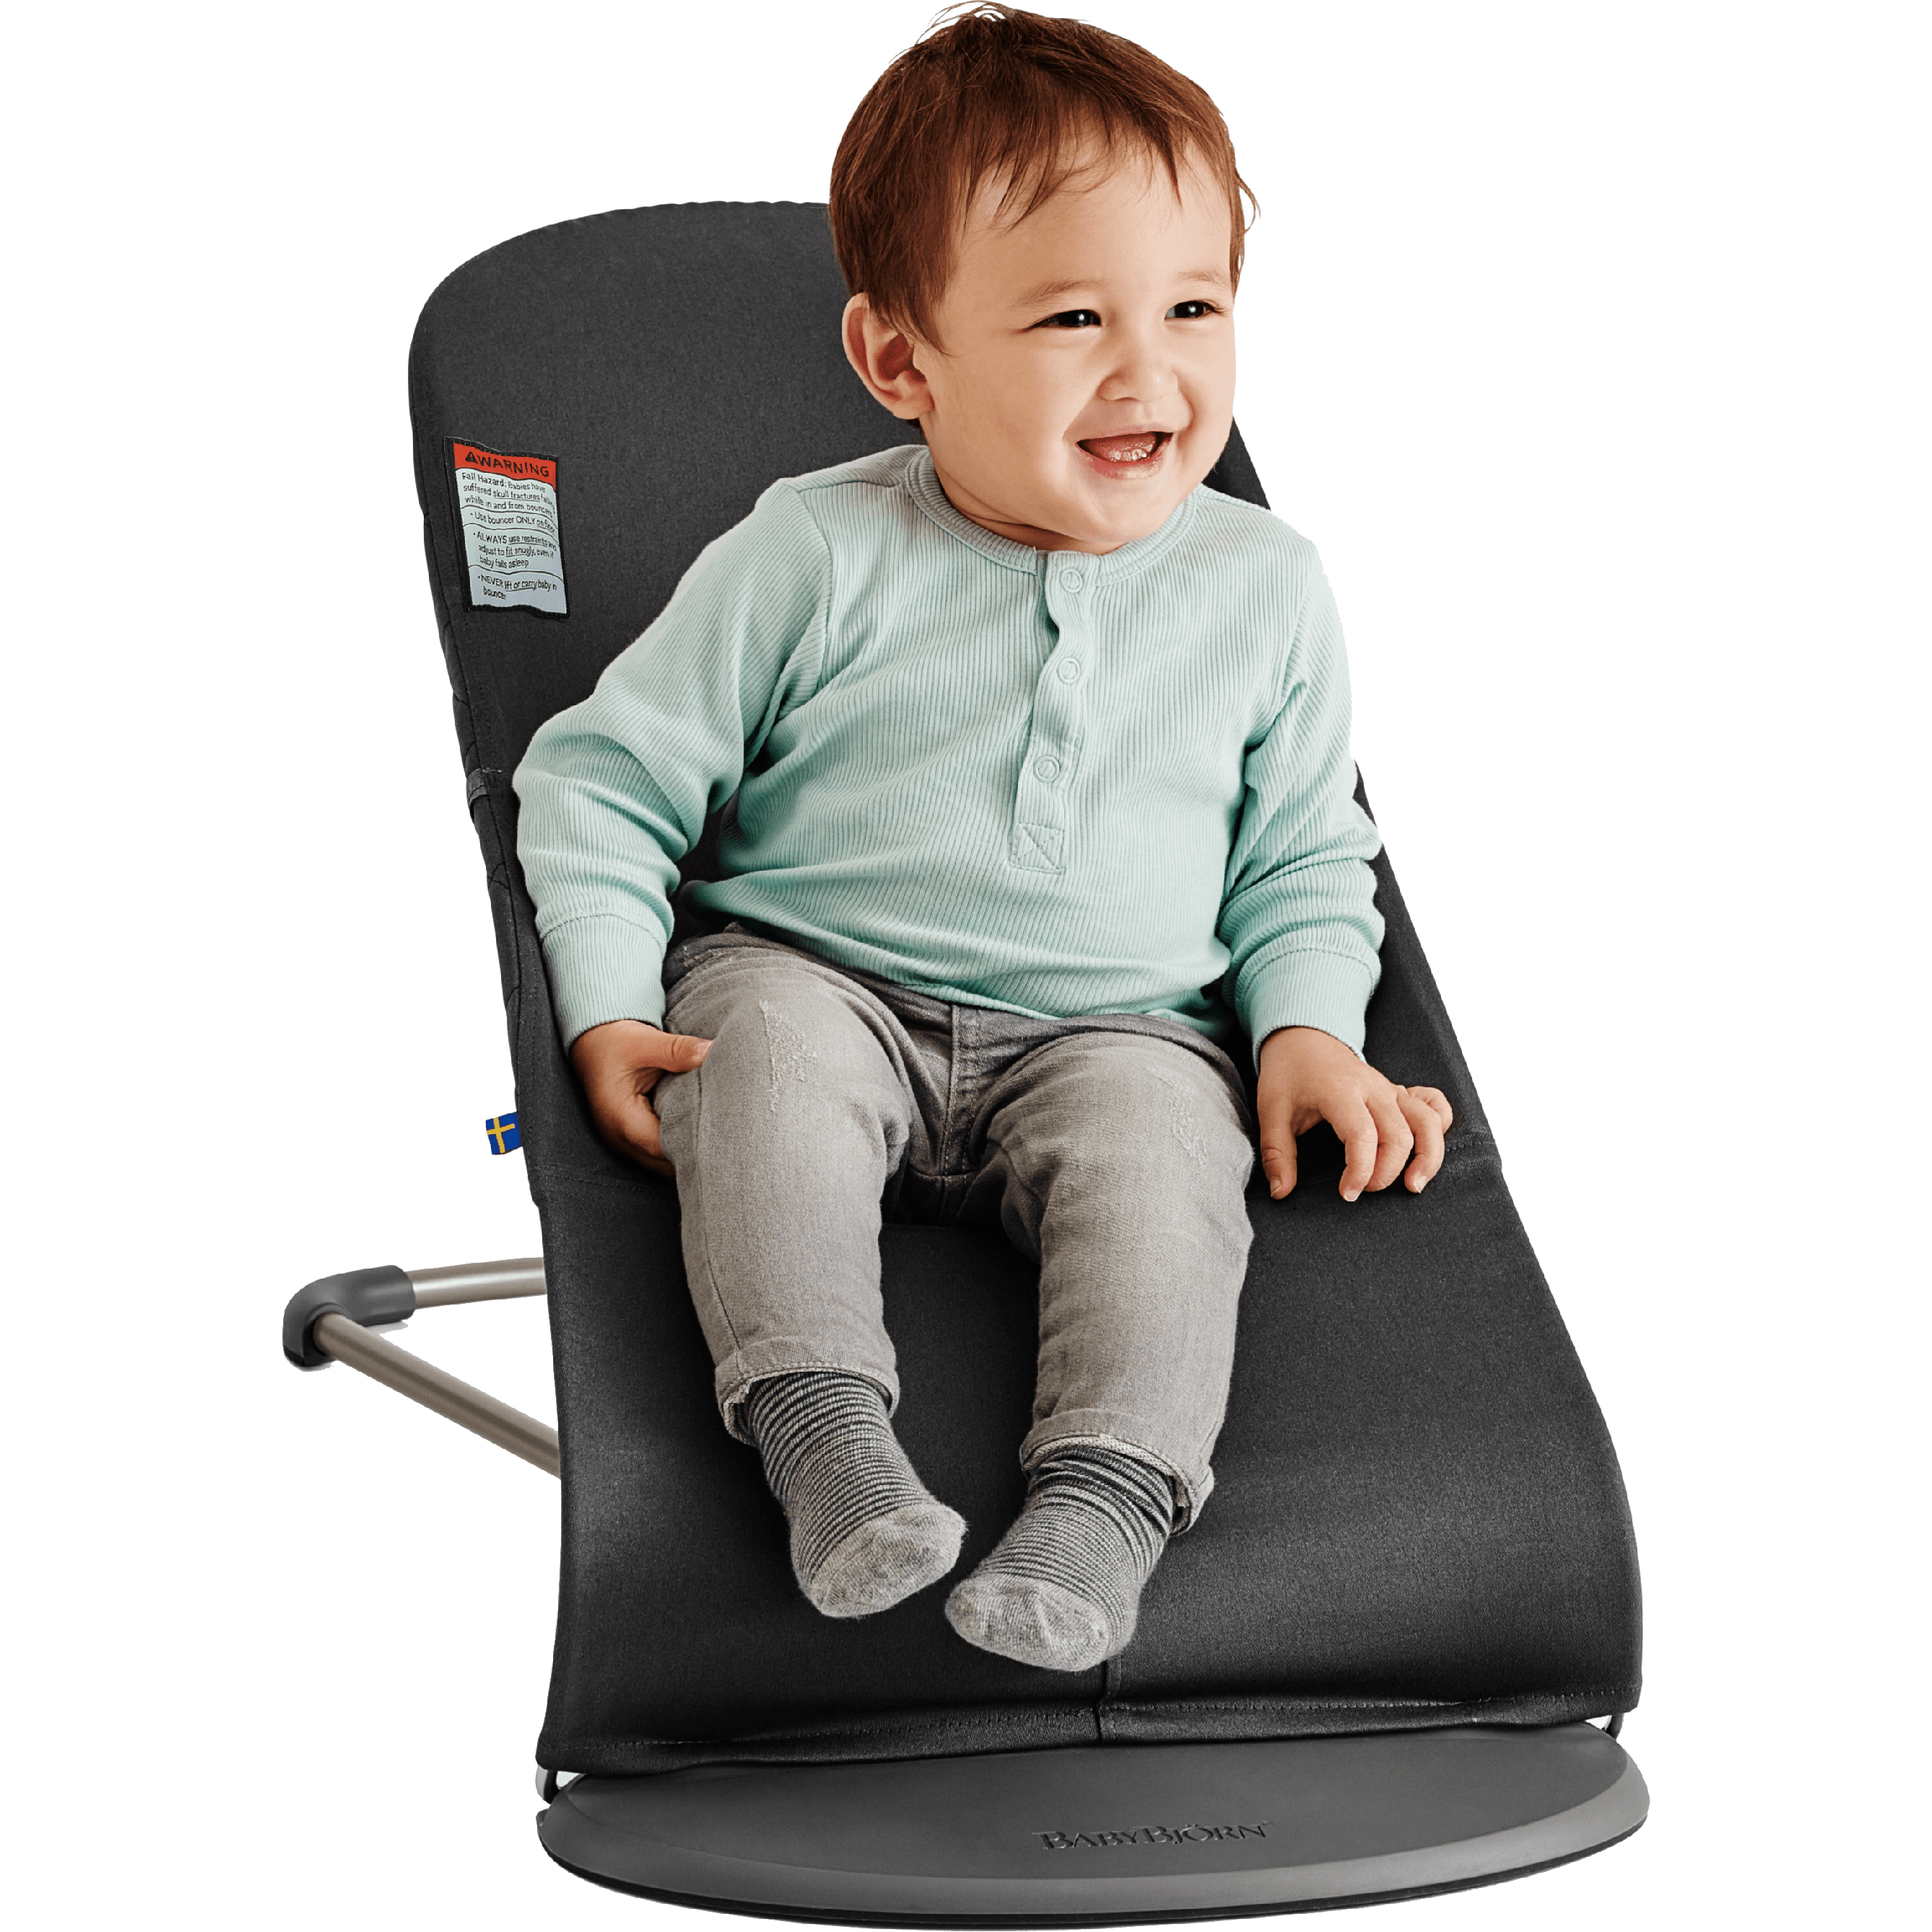 baby bjorn high chair red and black blue parrot covers bouncer bliss  a cozy seat for newborns babybjÖrn